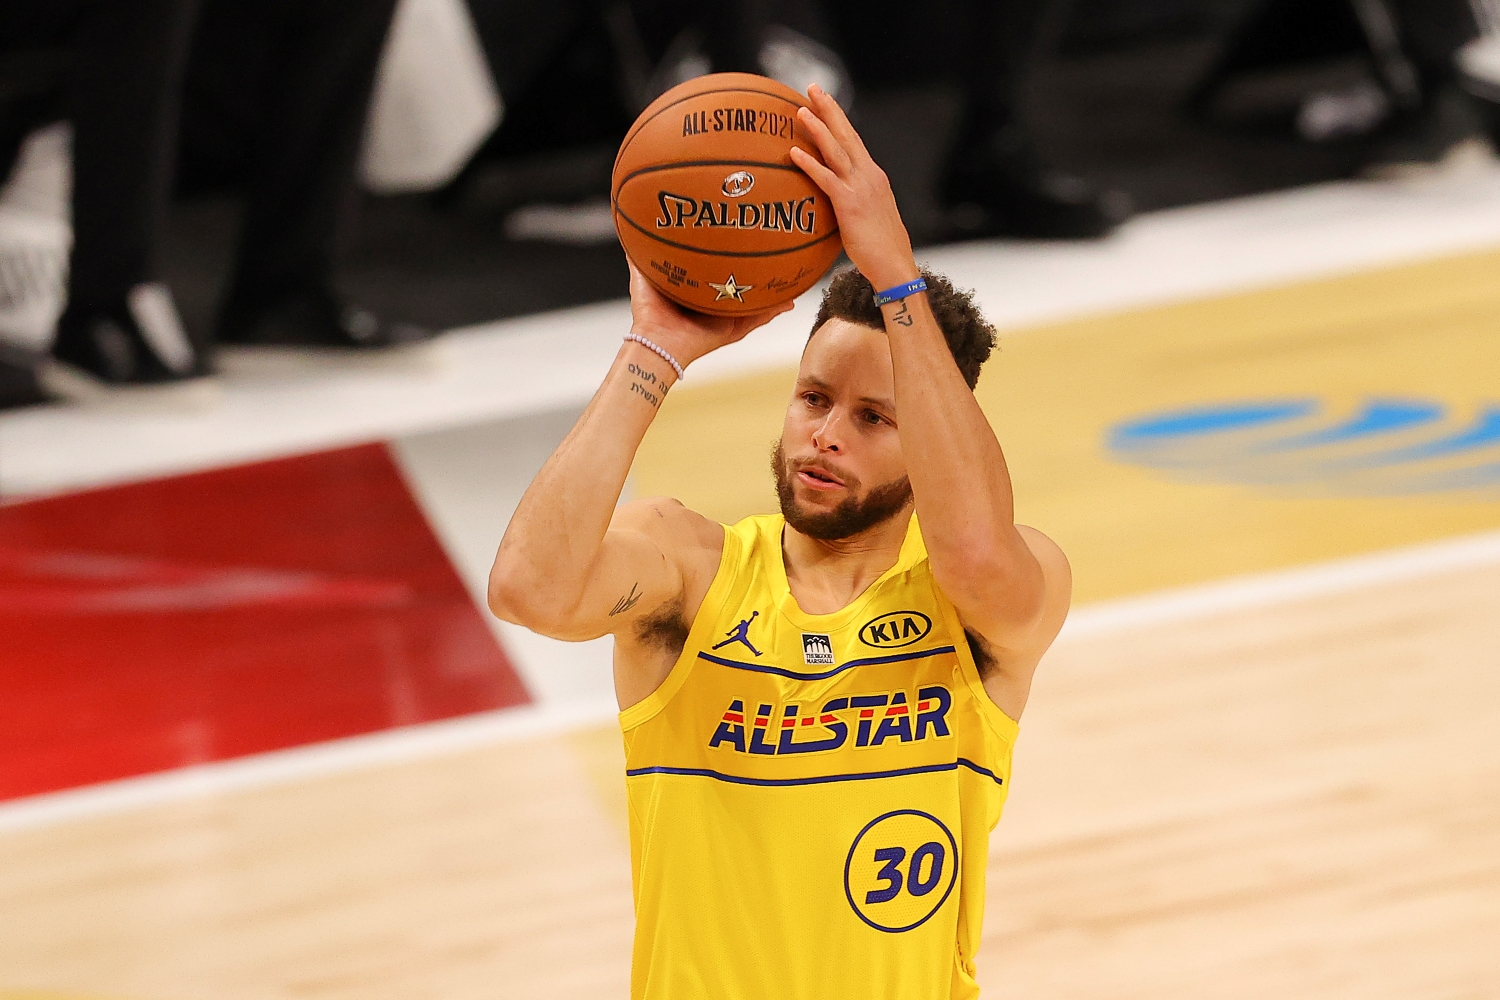 Stephen Curry Sent a Chilling Warning About His NBA Future After His Dominant All-Star Game Performance